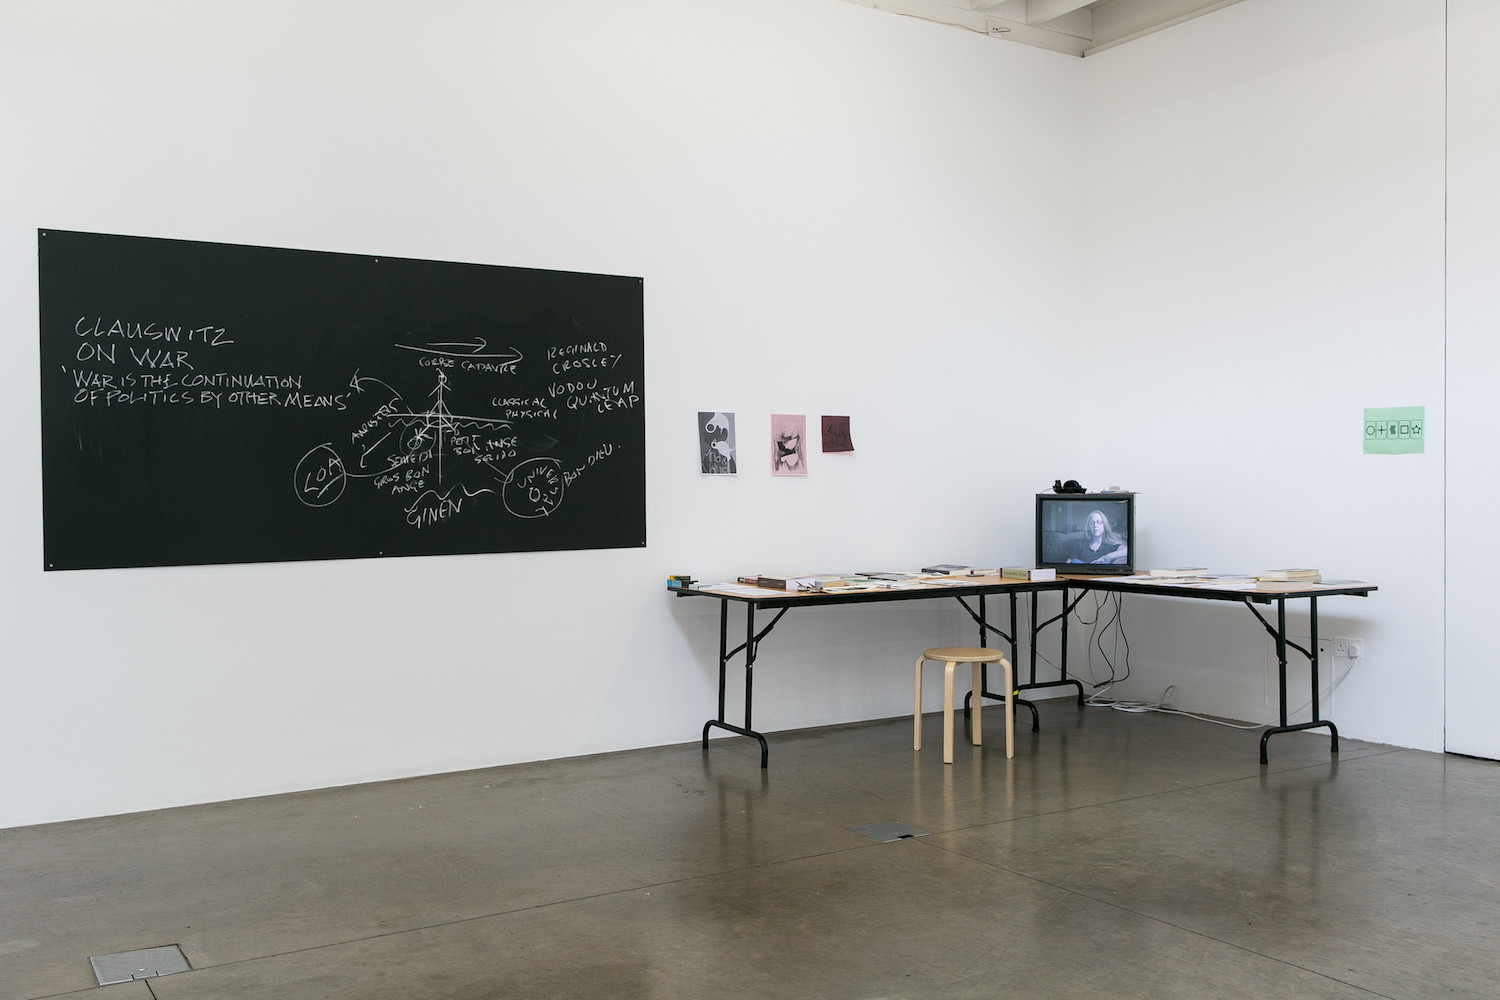 Bonnie Camplin